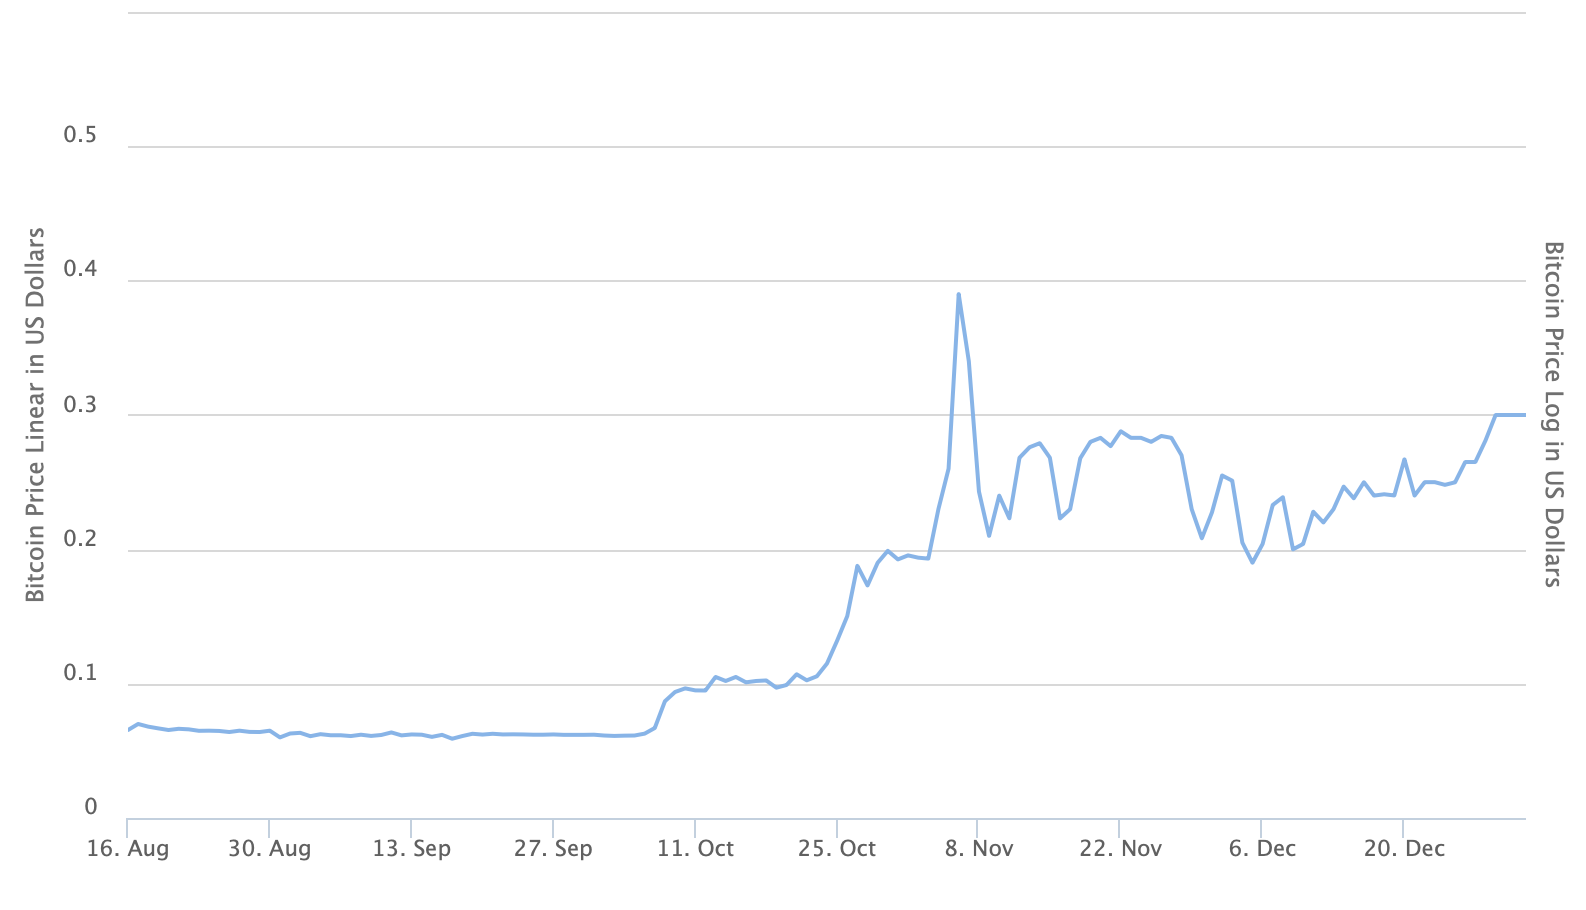 Bitcoin price in 2010